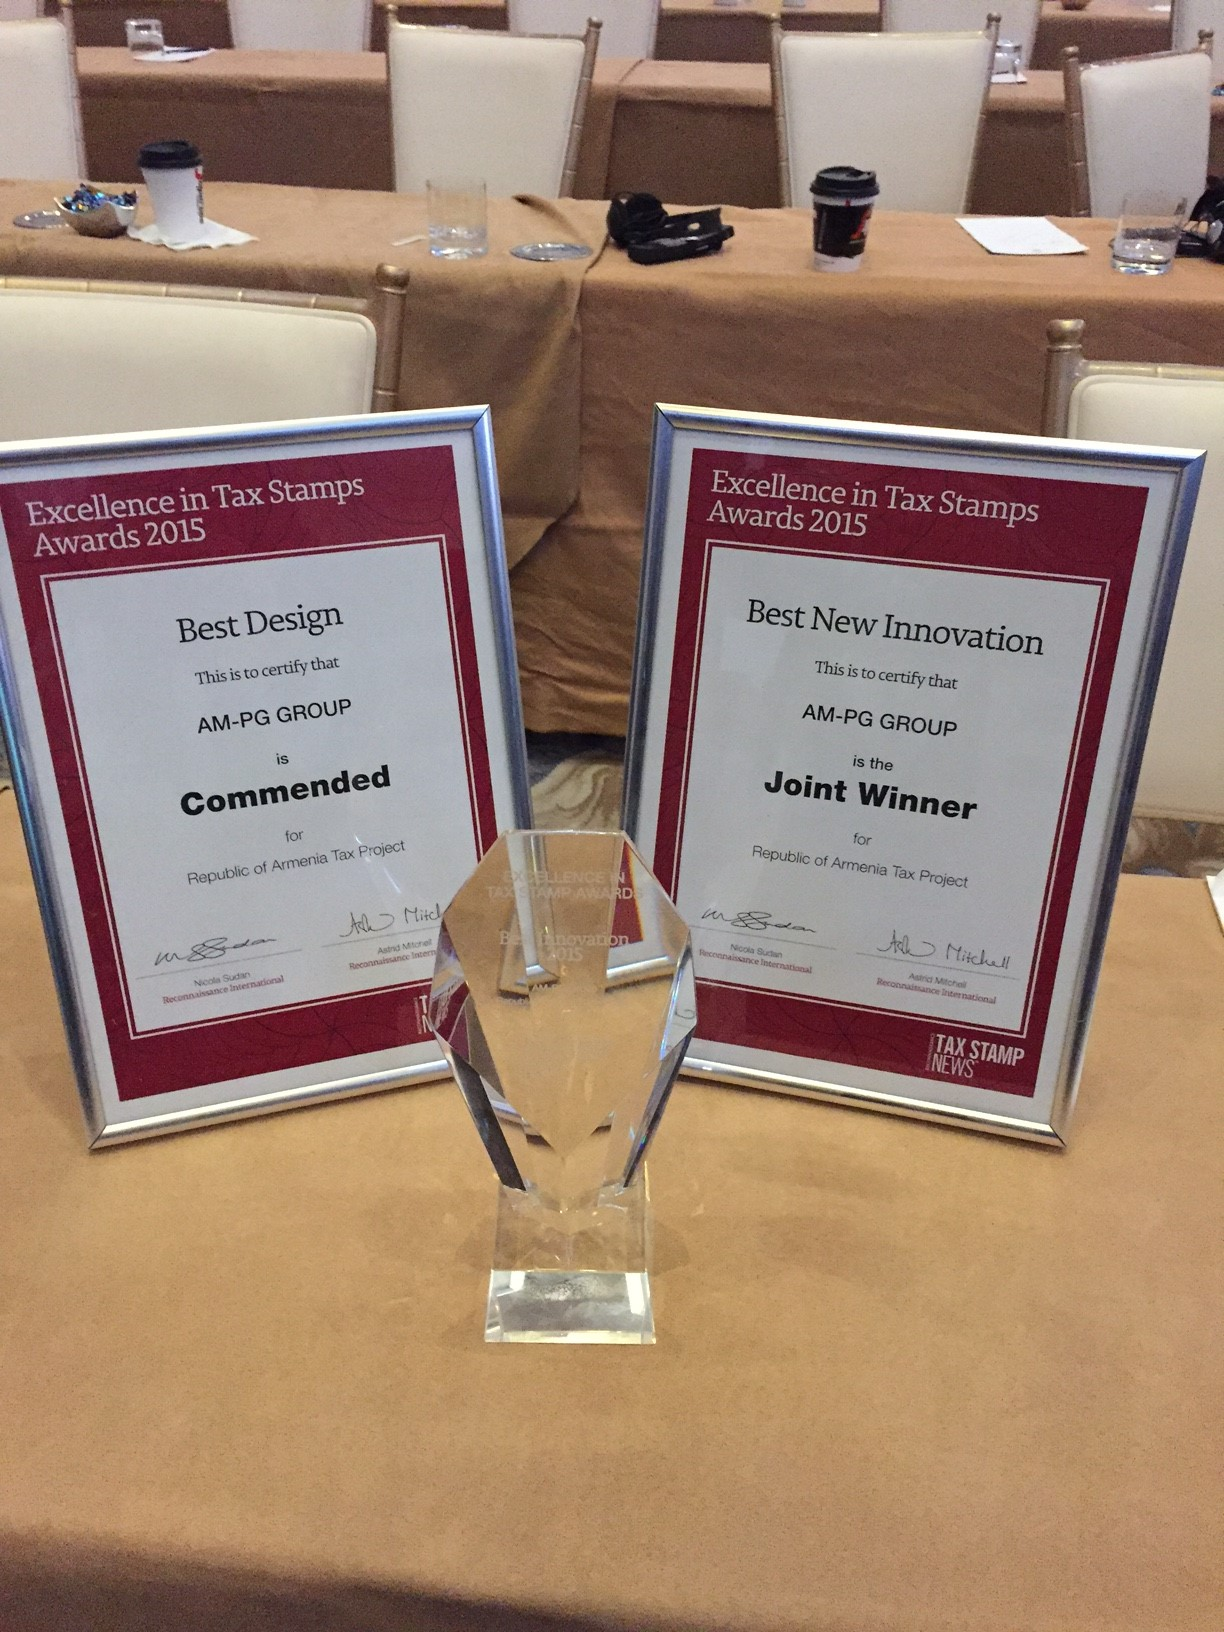 Best New Innovation and Best Design 2015